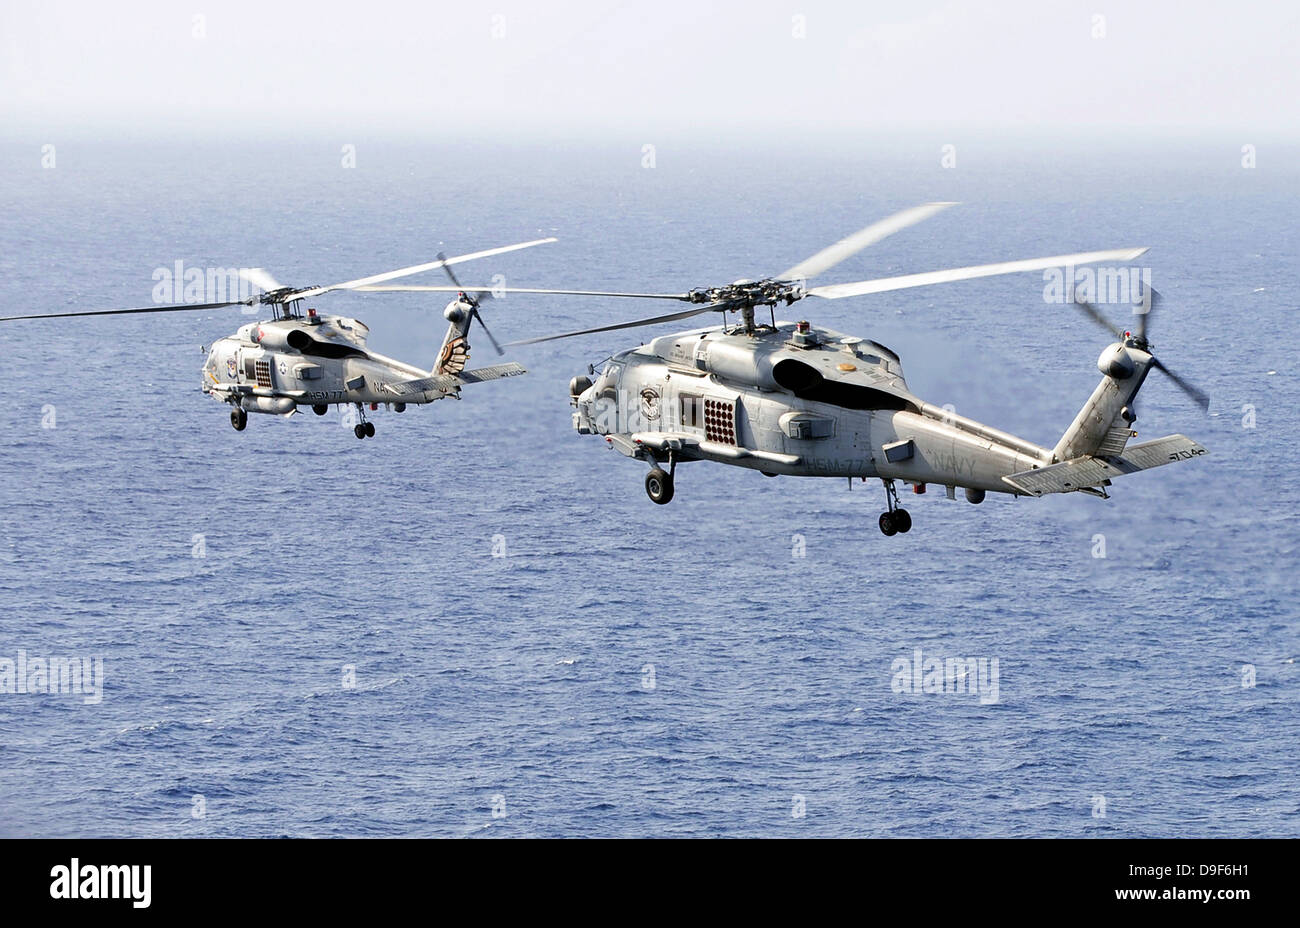 January 5, 2012 - An airborne change of command in the sky over the South China Sea. - Stock Image